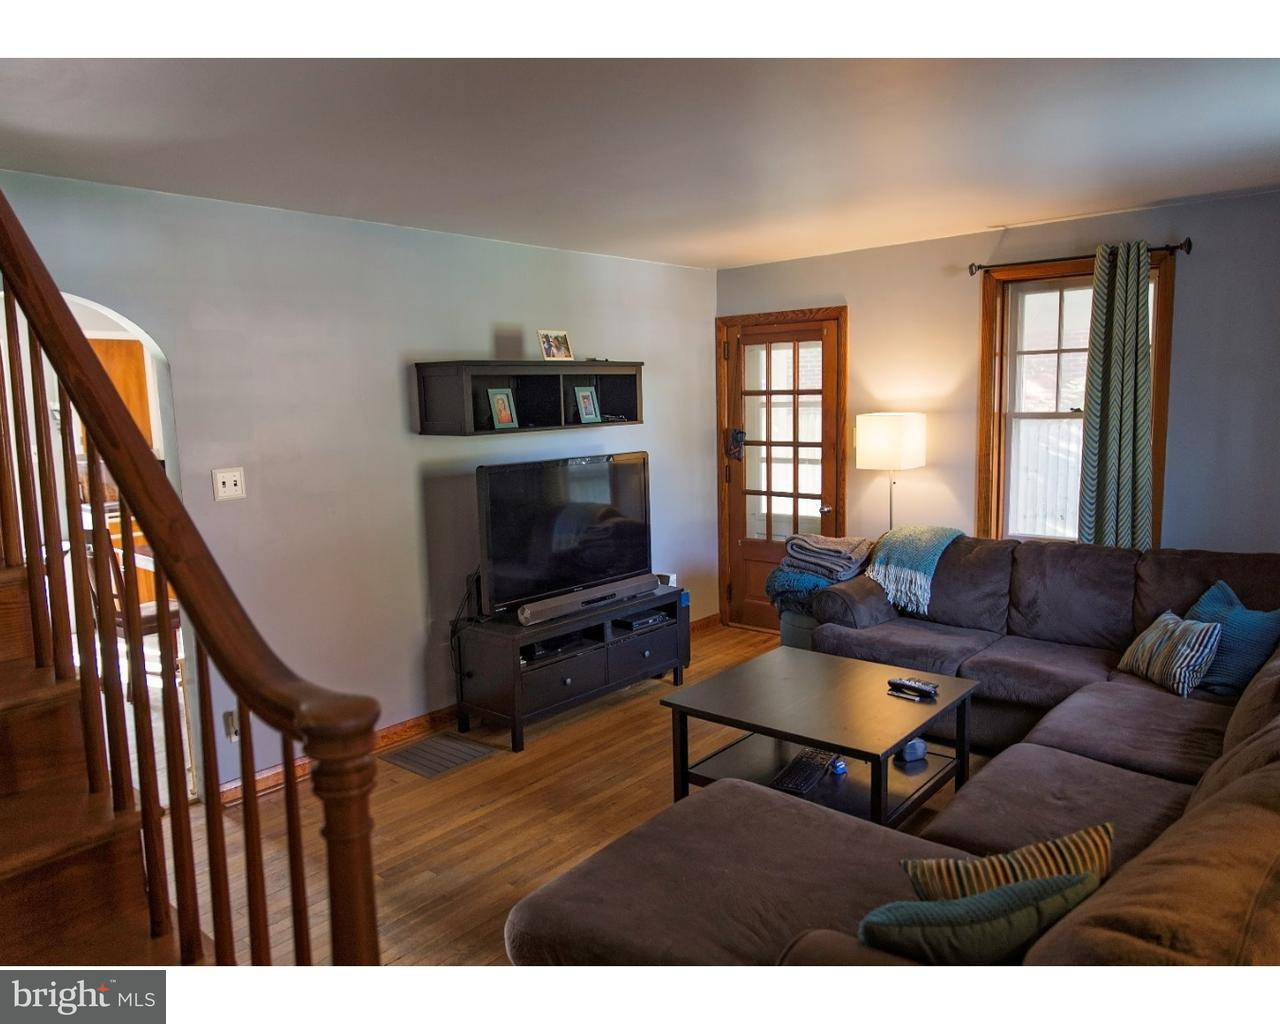 122 NORMAL AVE, KUTZTOWN - Listed at $174,900, KUTZTOWN